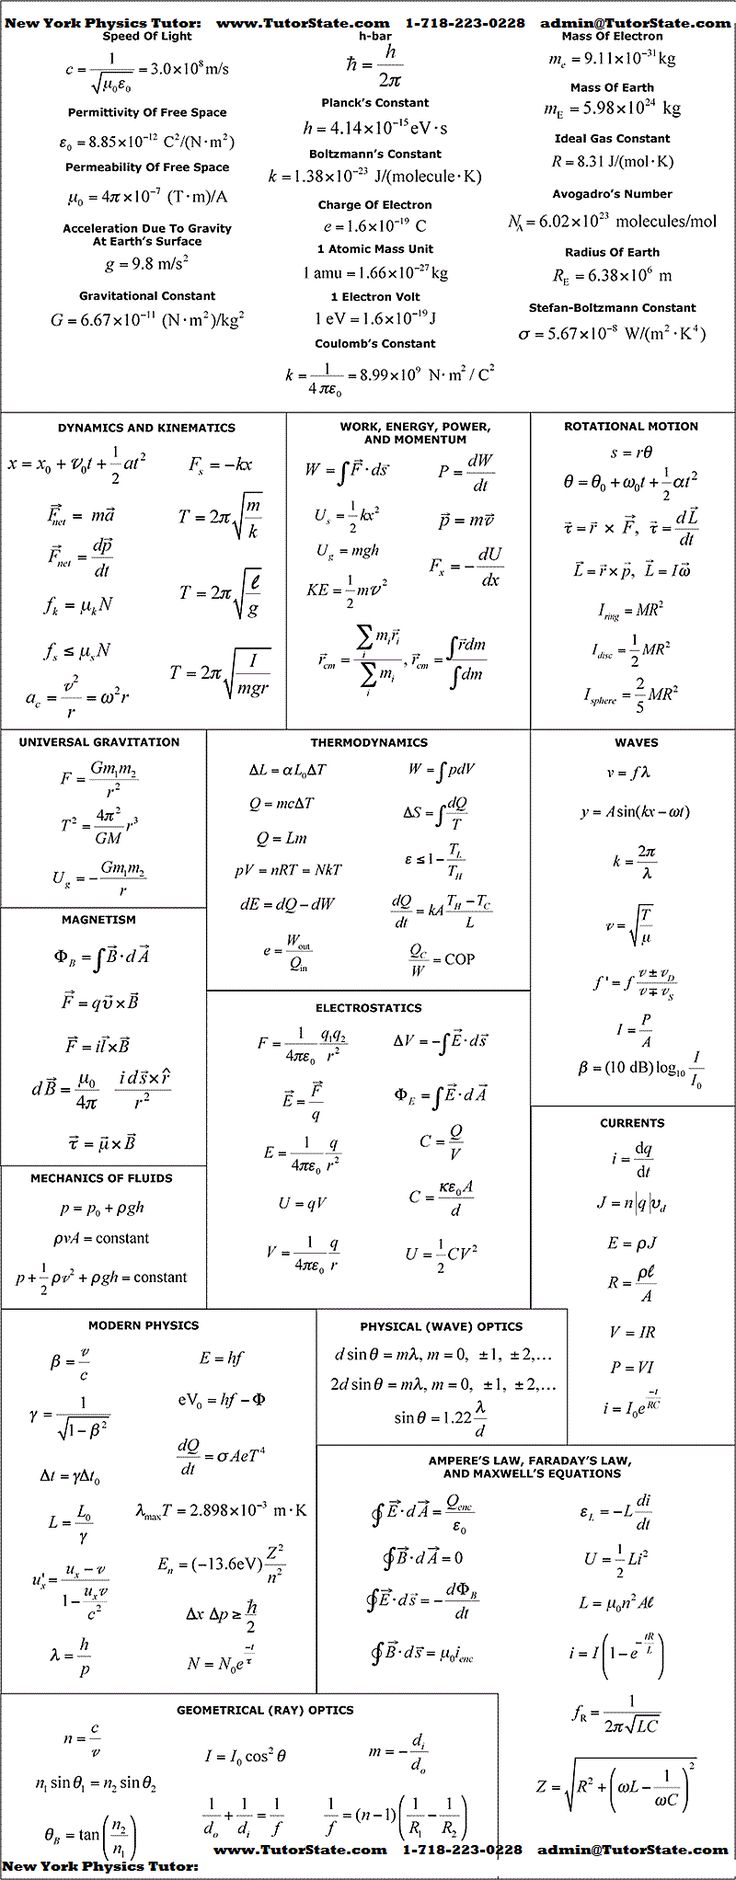 I had to memorize a lot of these for Physics 111 and 112. I still know the important ones